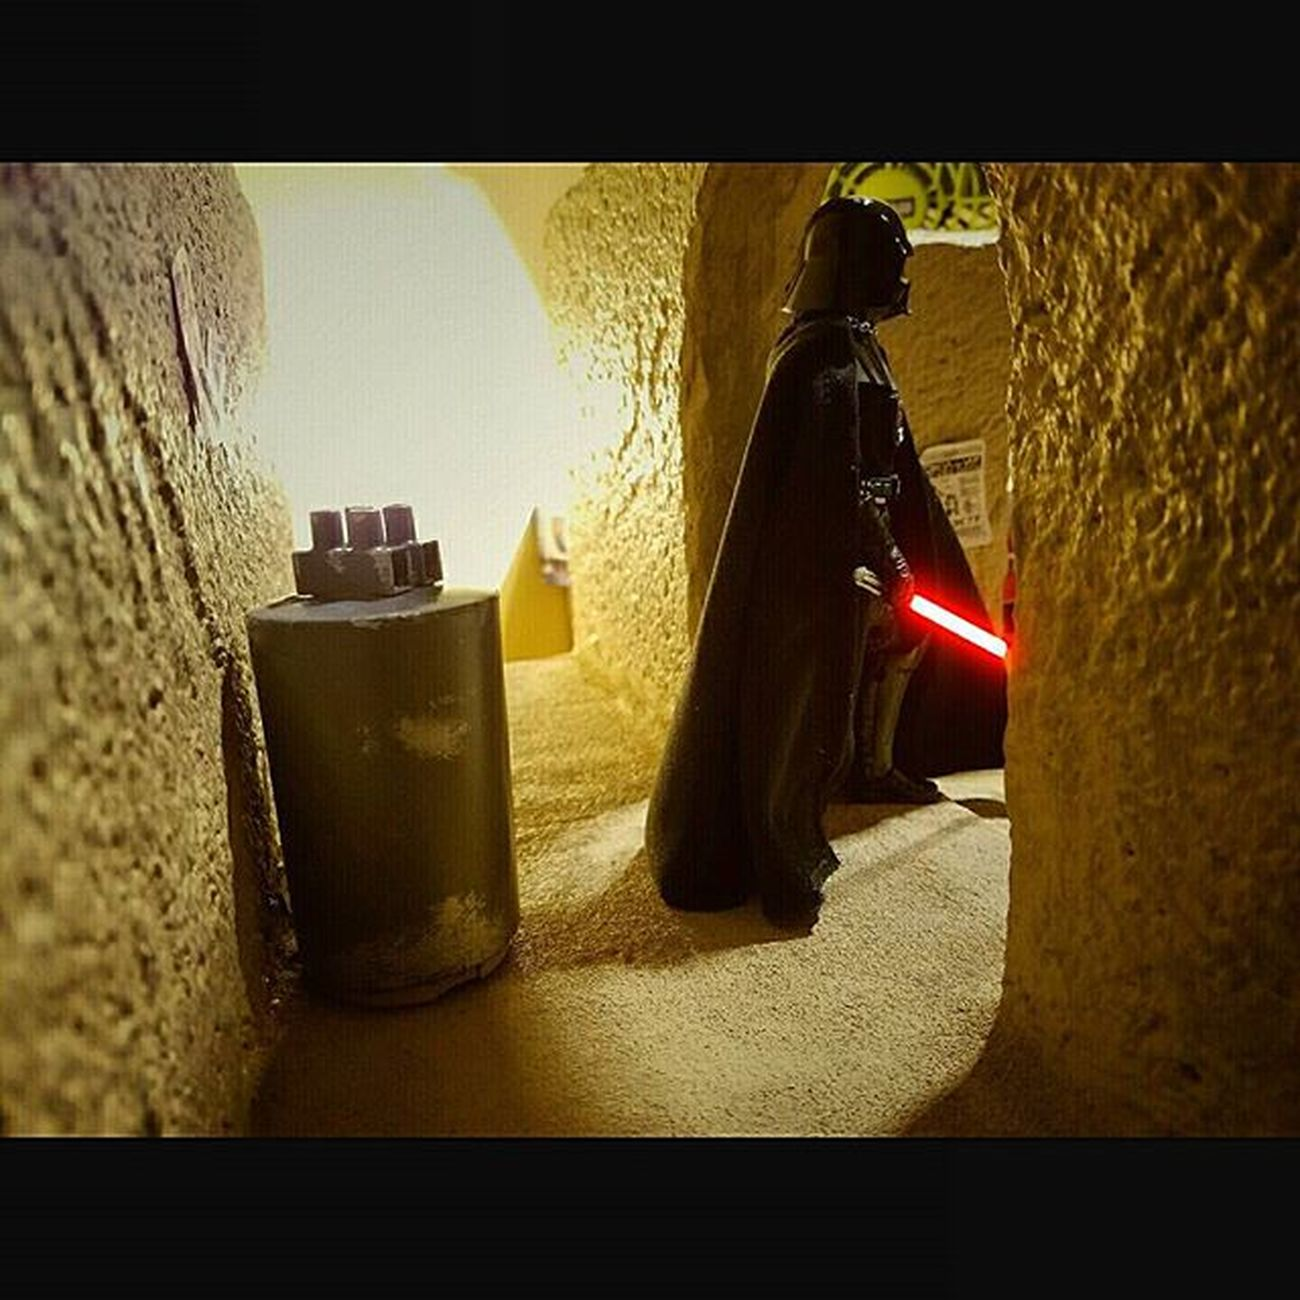 Darth Vader looking for those droids. Sandtooine Tatooine Starwarstoyfigures Starwars Starwarsblackseries Blackseries Starwarstheblackseries Ihatesand Moistureevaporators Moisturefarm Diorama Wanted Wantedposter Droids Hansolo Darthvader Lightsaber Lordvader Darkside Sith